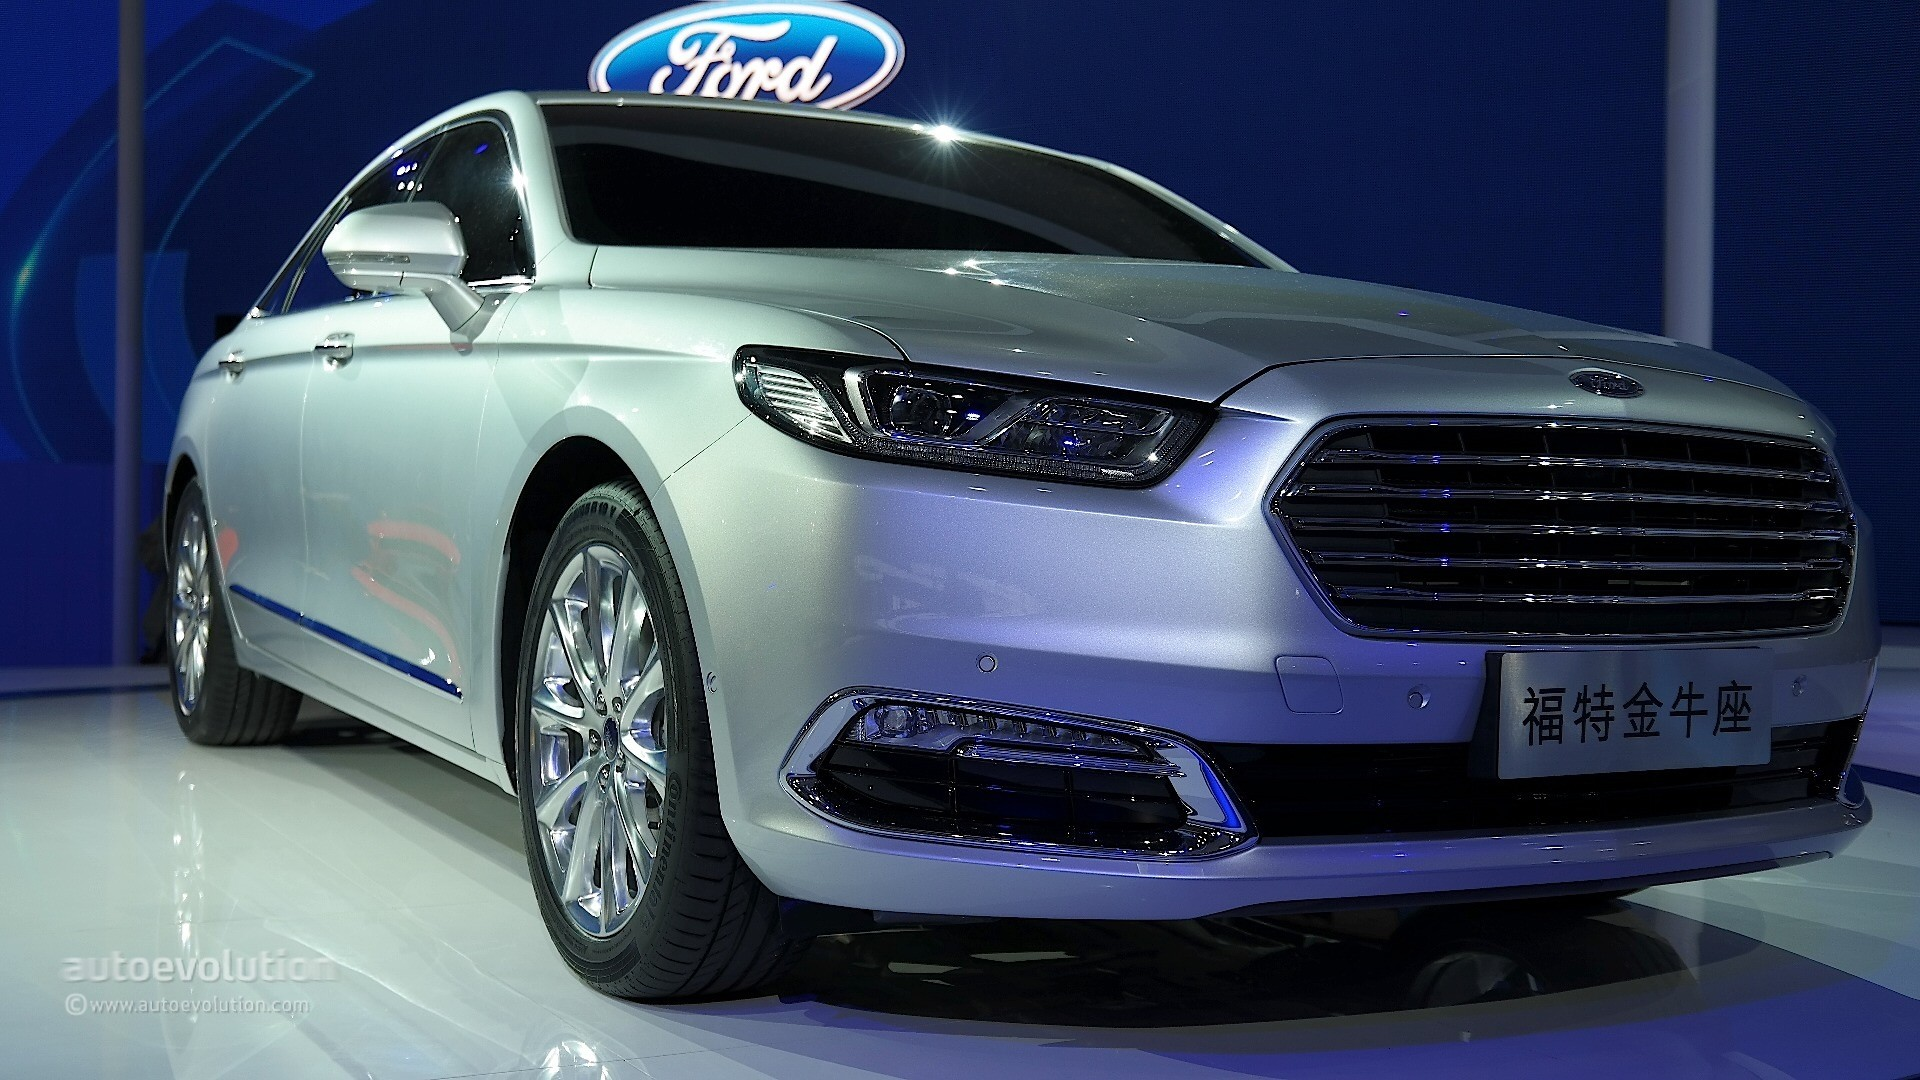 2016 Ford Taurus Sho >> 2016 Ford Taurus Shows Up in Shanghai with Long Wheelbase, Premium Features - autoevolution